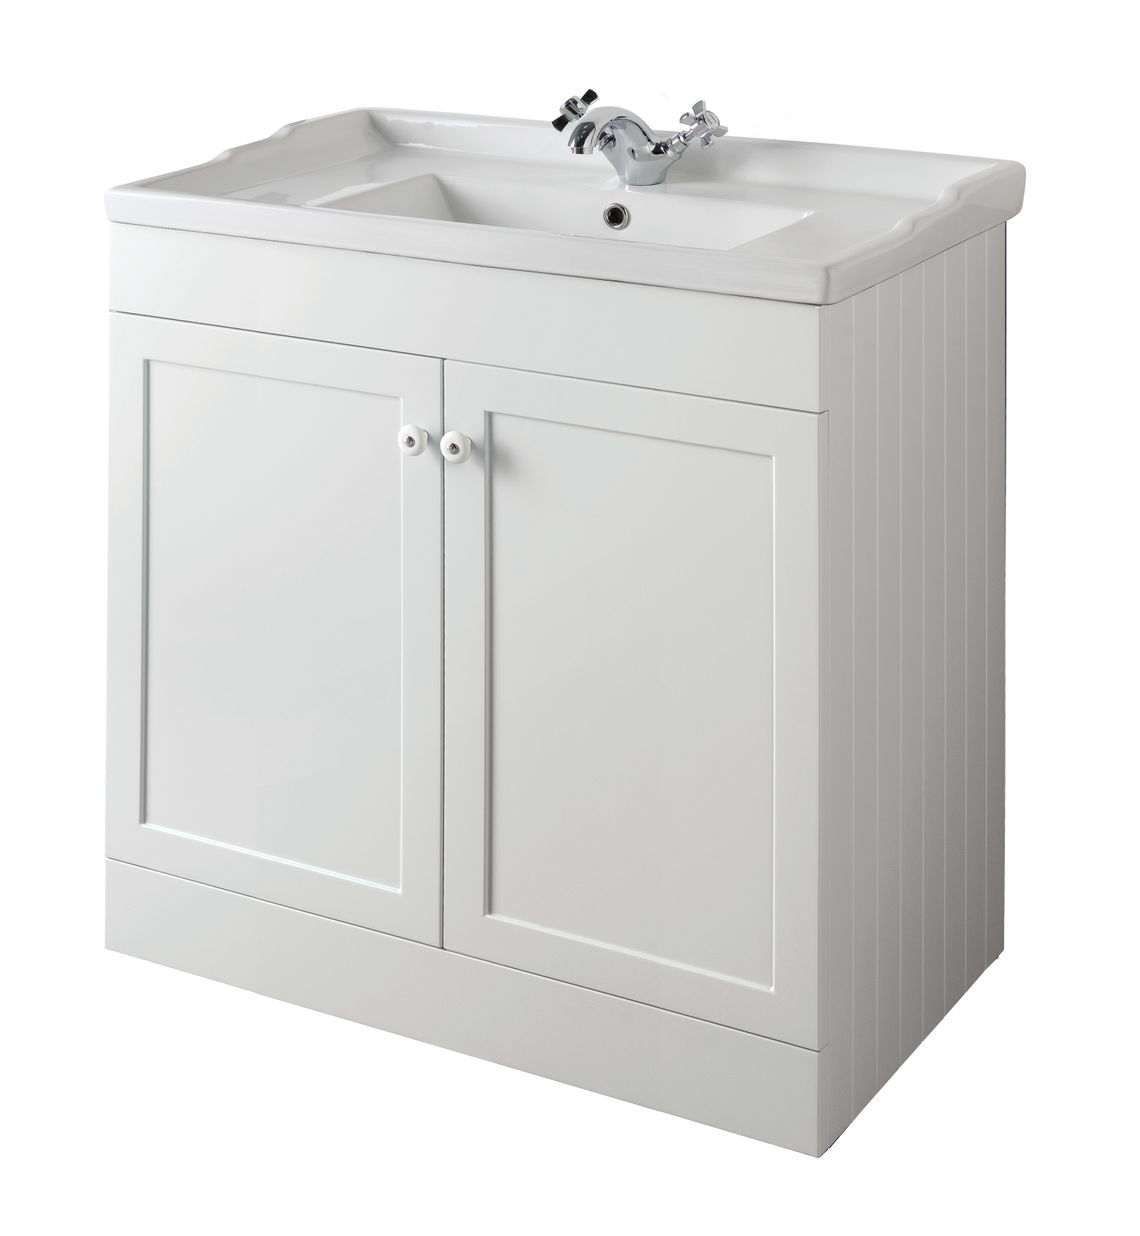 Bathroom Furniture, 800mm Unit - Matt White, STRABANE WHOLESALE LTD, Strabane, Co. Tyrone